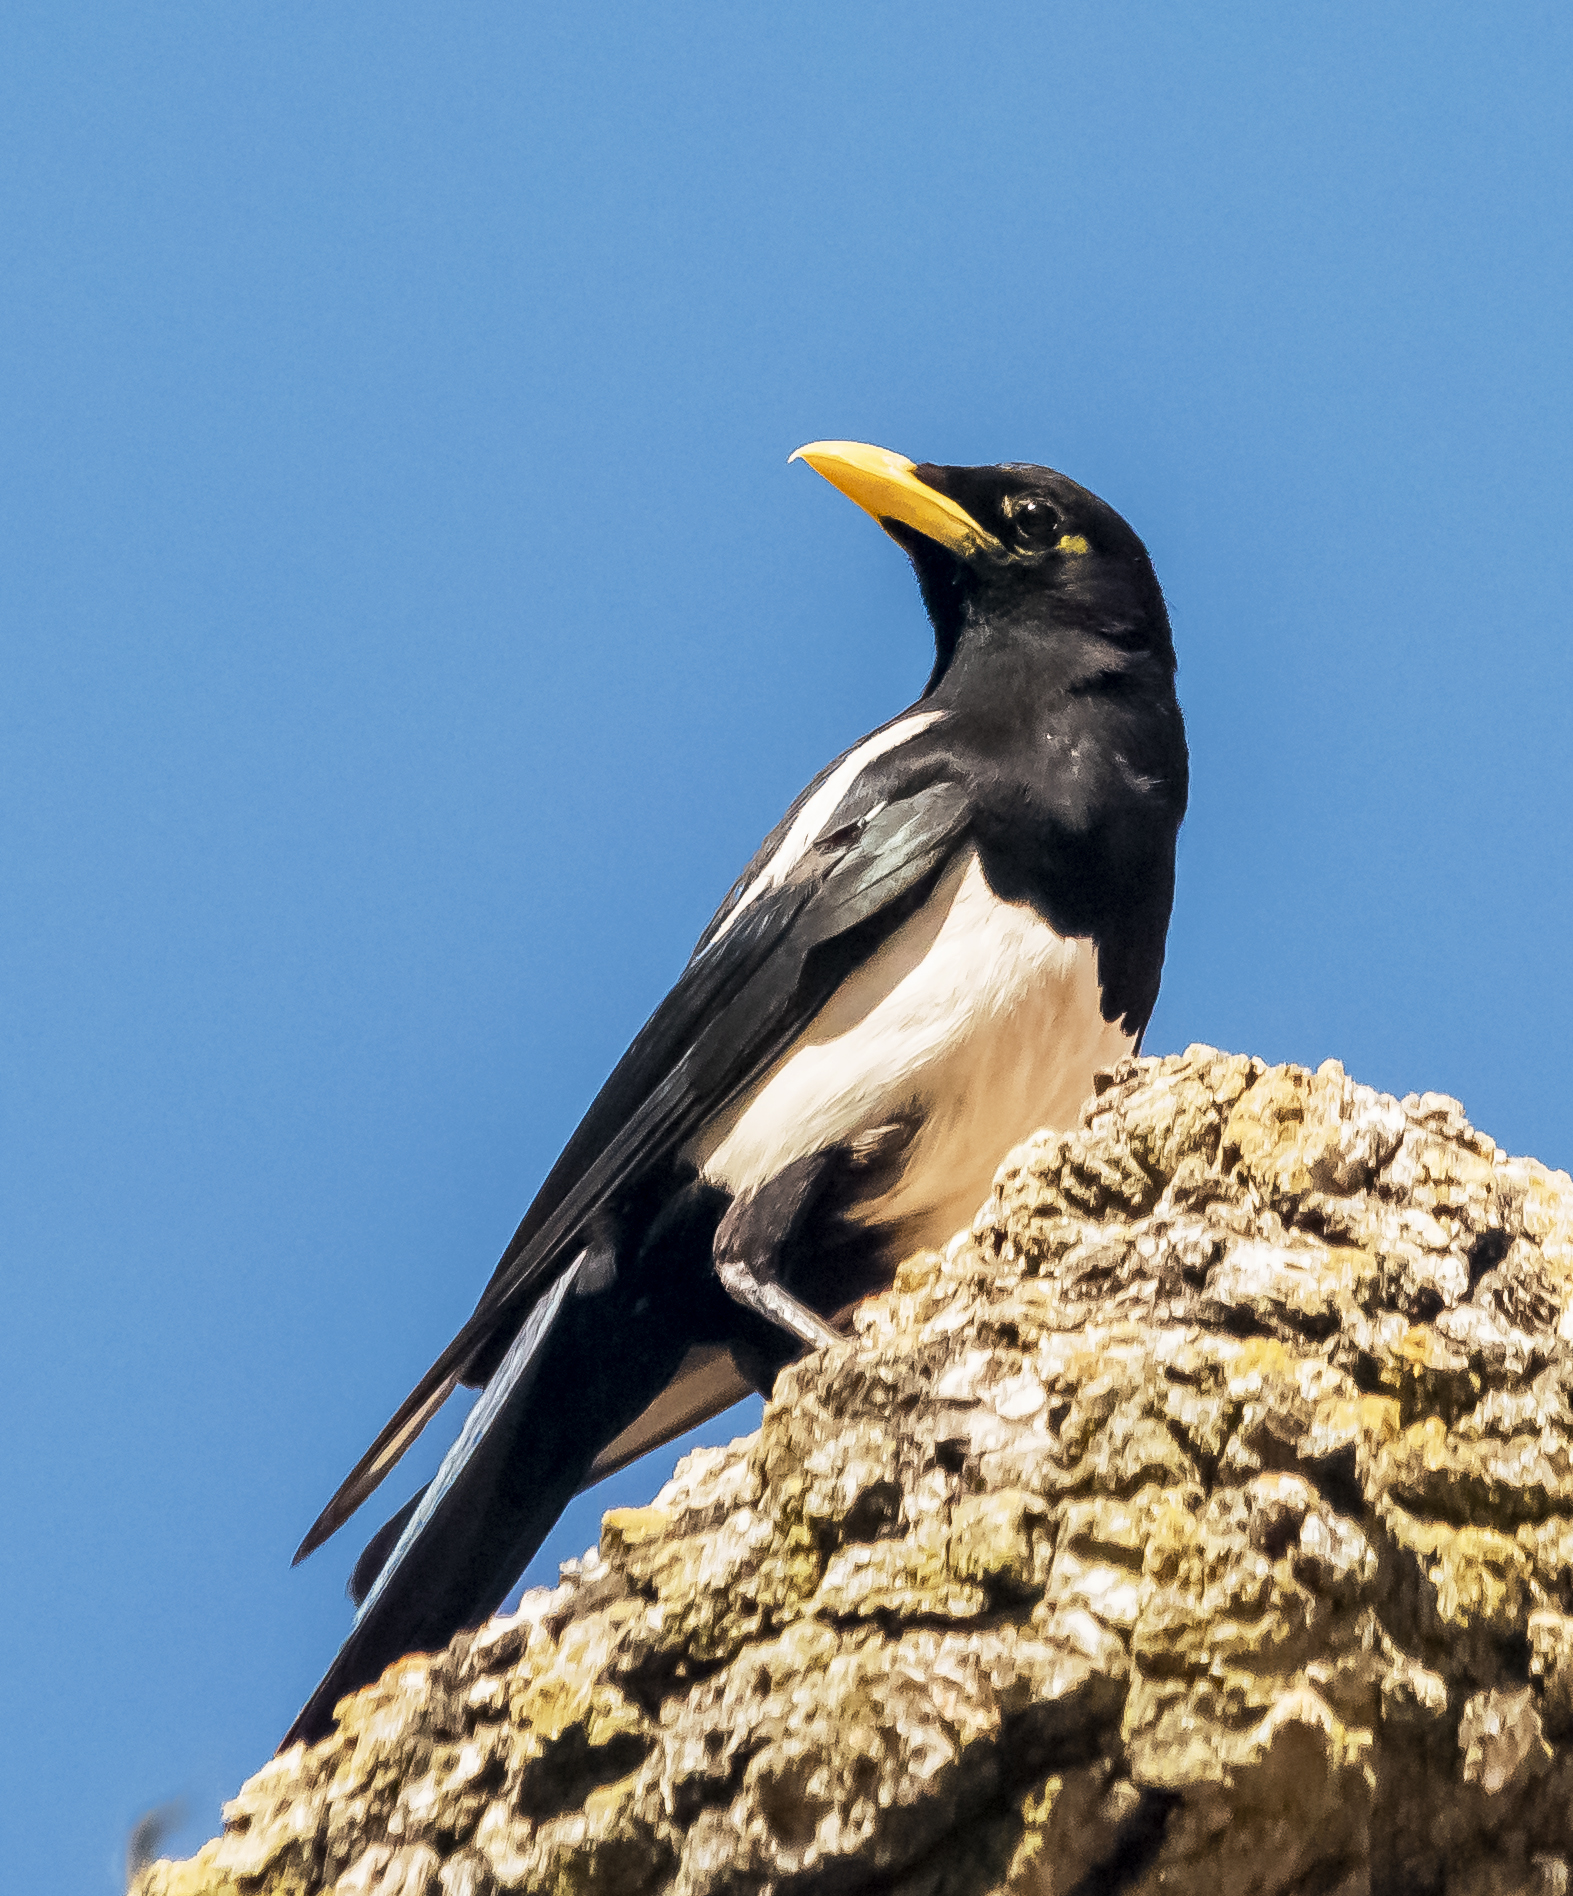 Yellow-billed Magpie in Coyote Valley Open Space Preserve, California